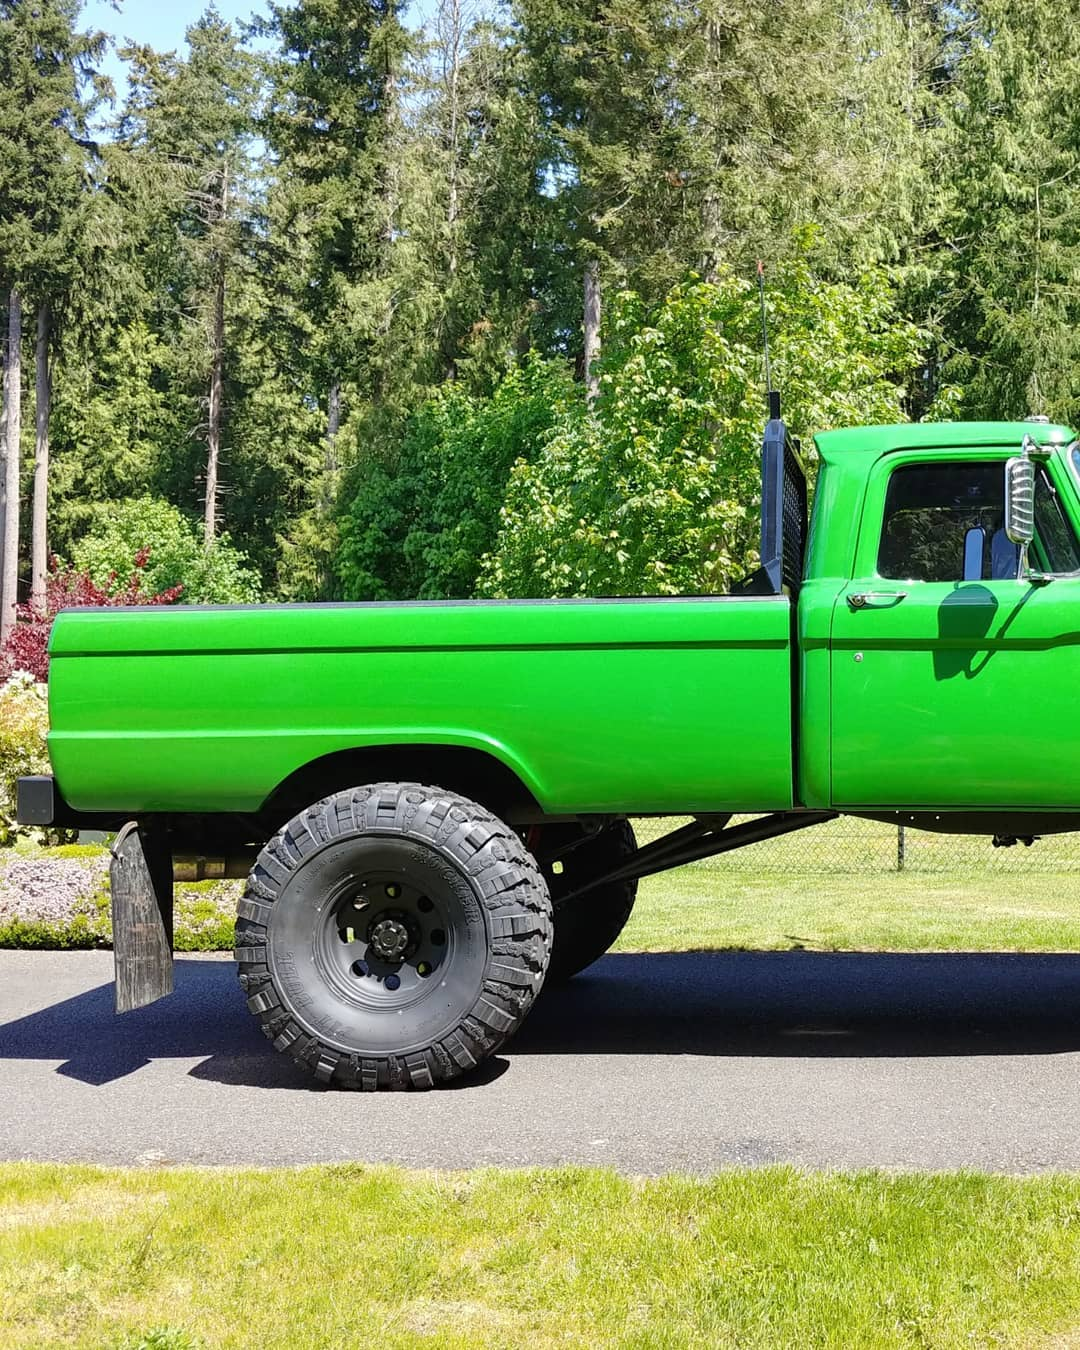 1965 Ford F100 With a 64 Grill On 41.5 Pitbull Tires 7.jpg